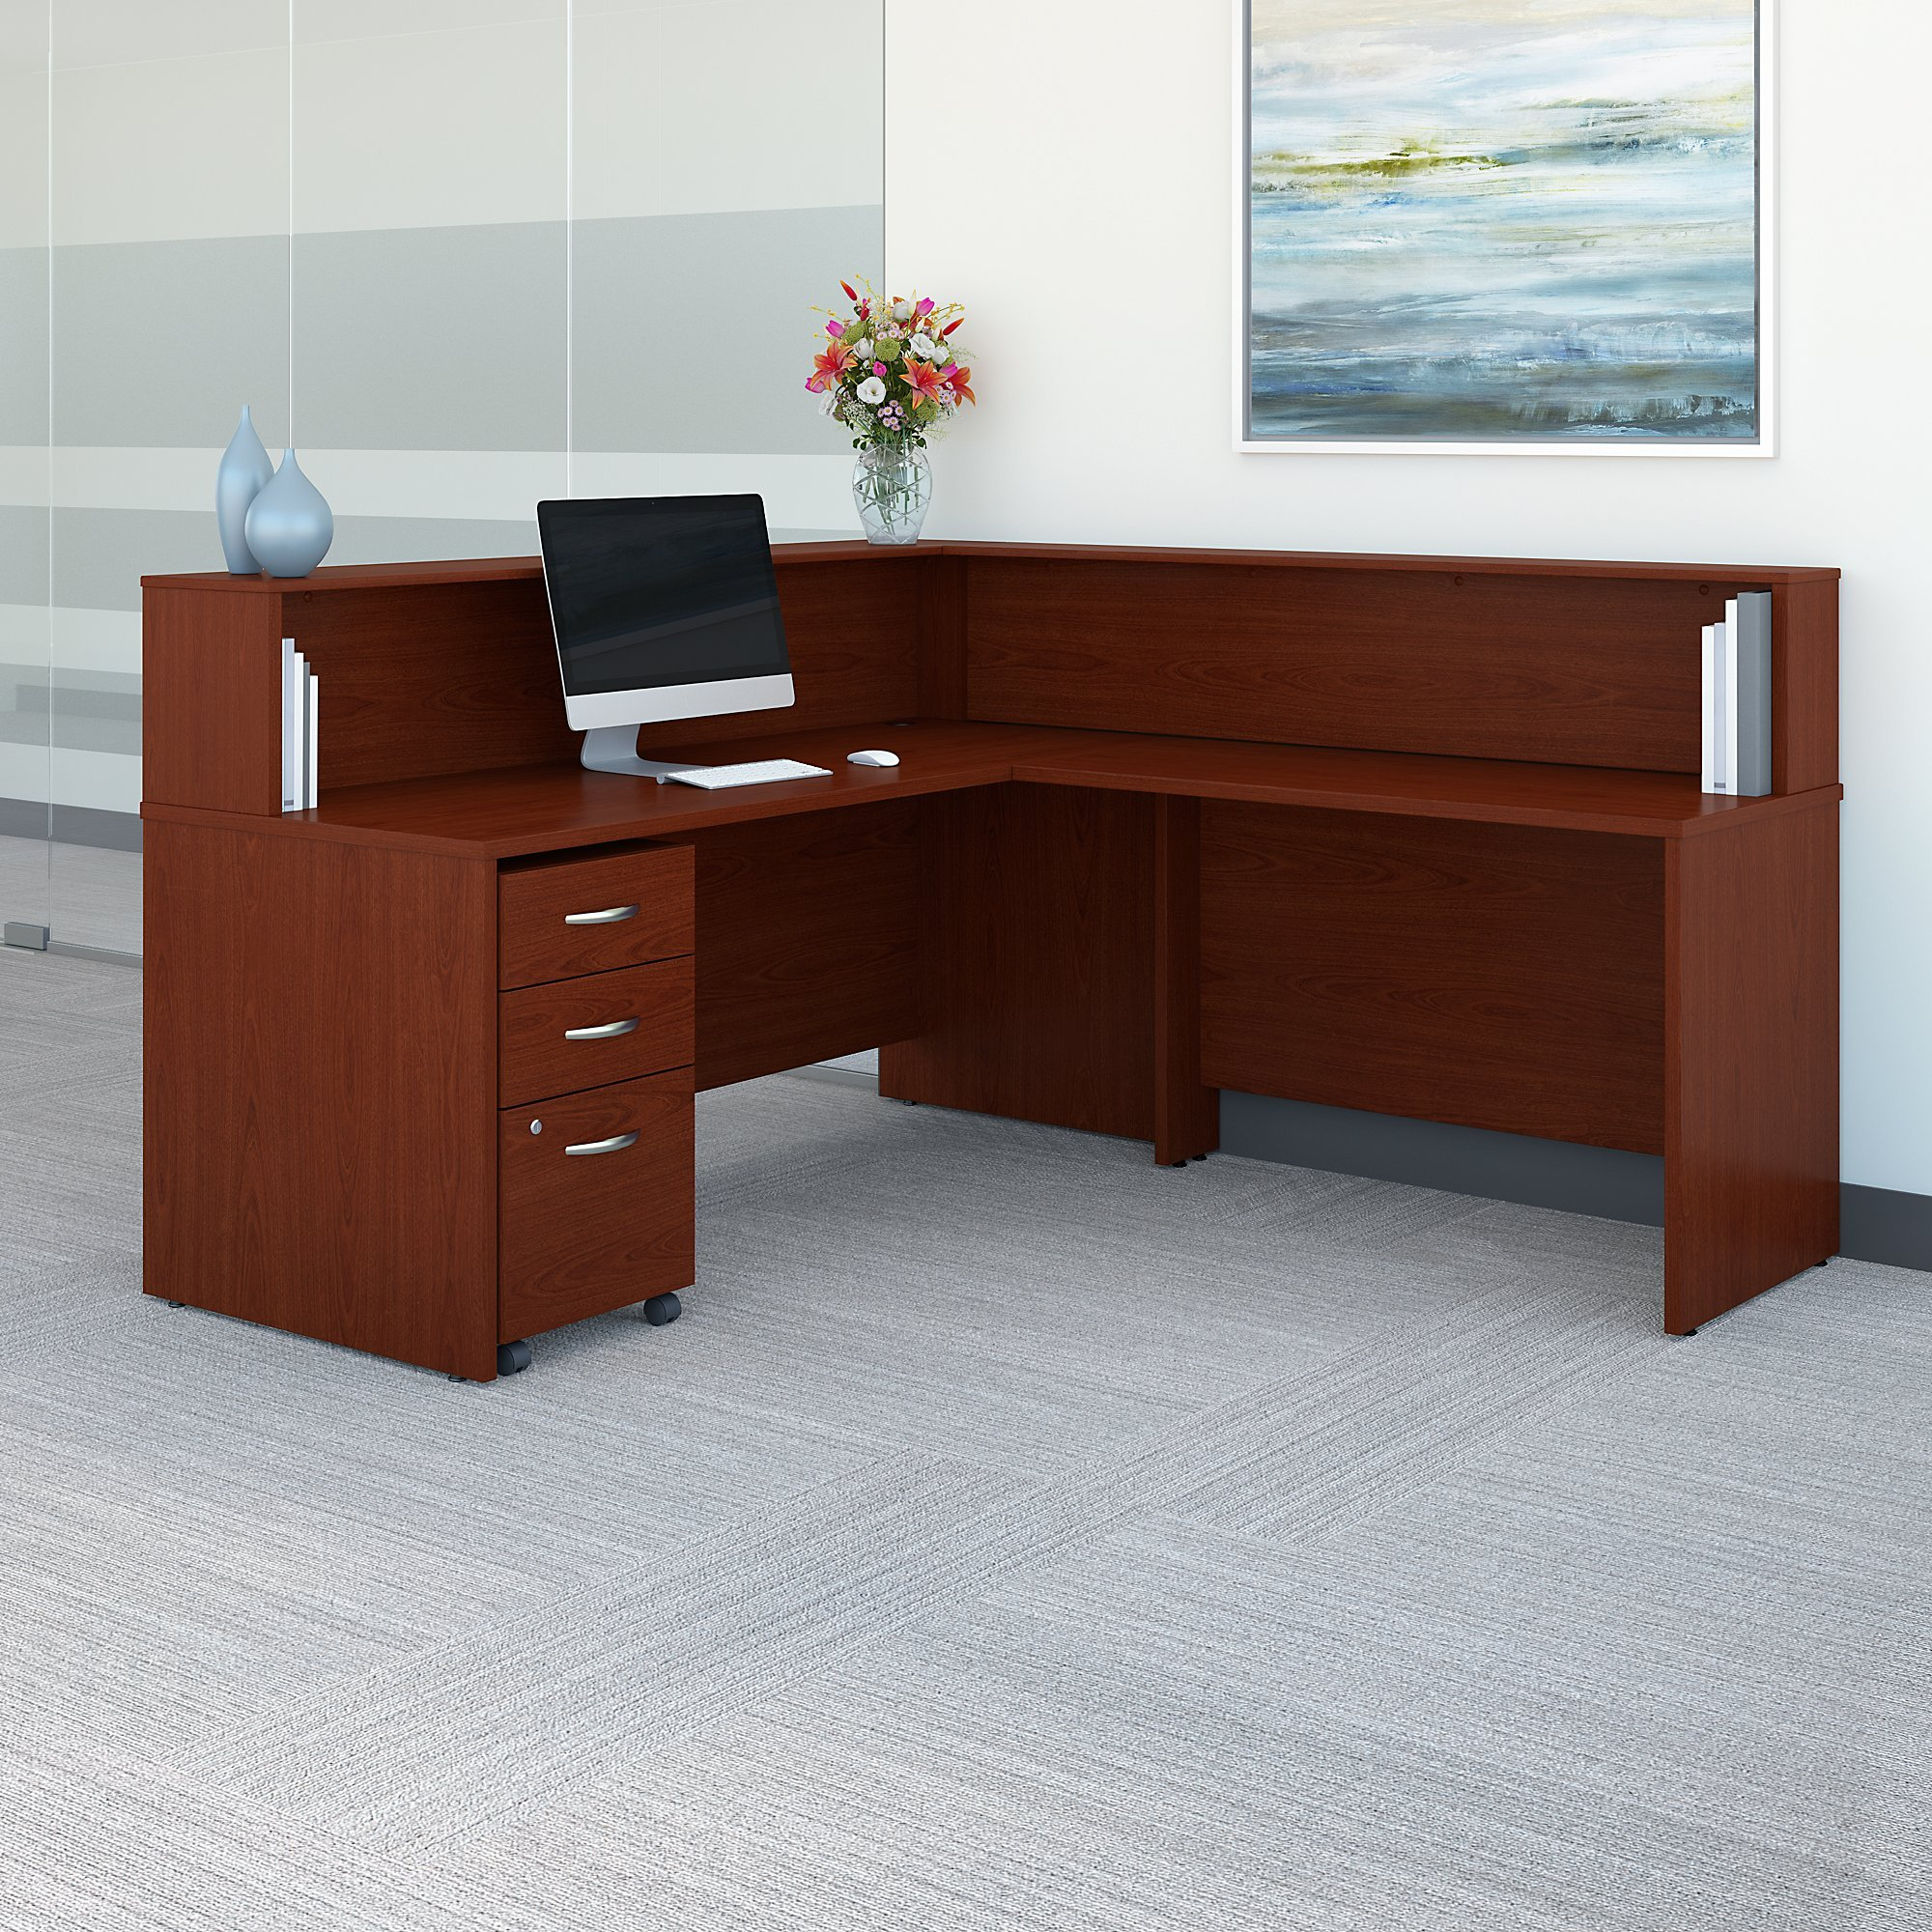 Bush Business Furniture Series C L Shaped Reception Desk with Mobile File Cabinet in Mahogany by Bush Business Furniture (Image #2)